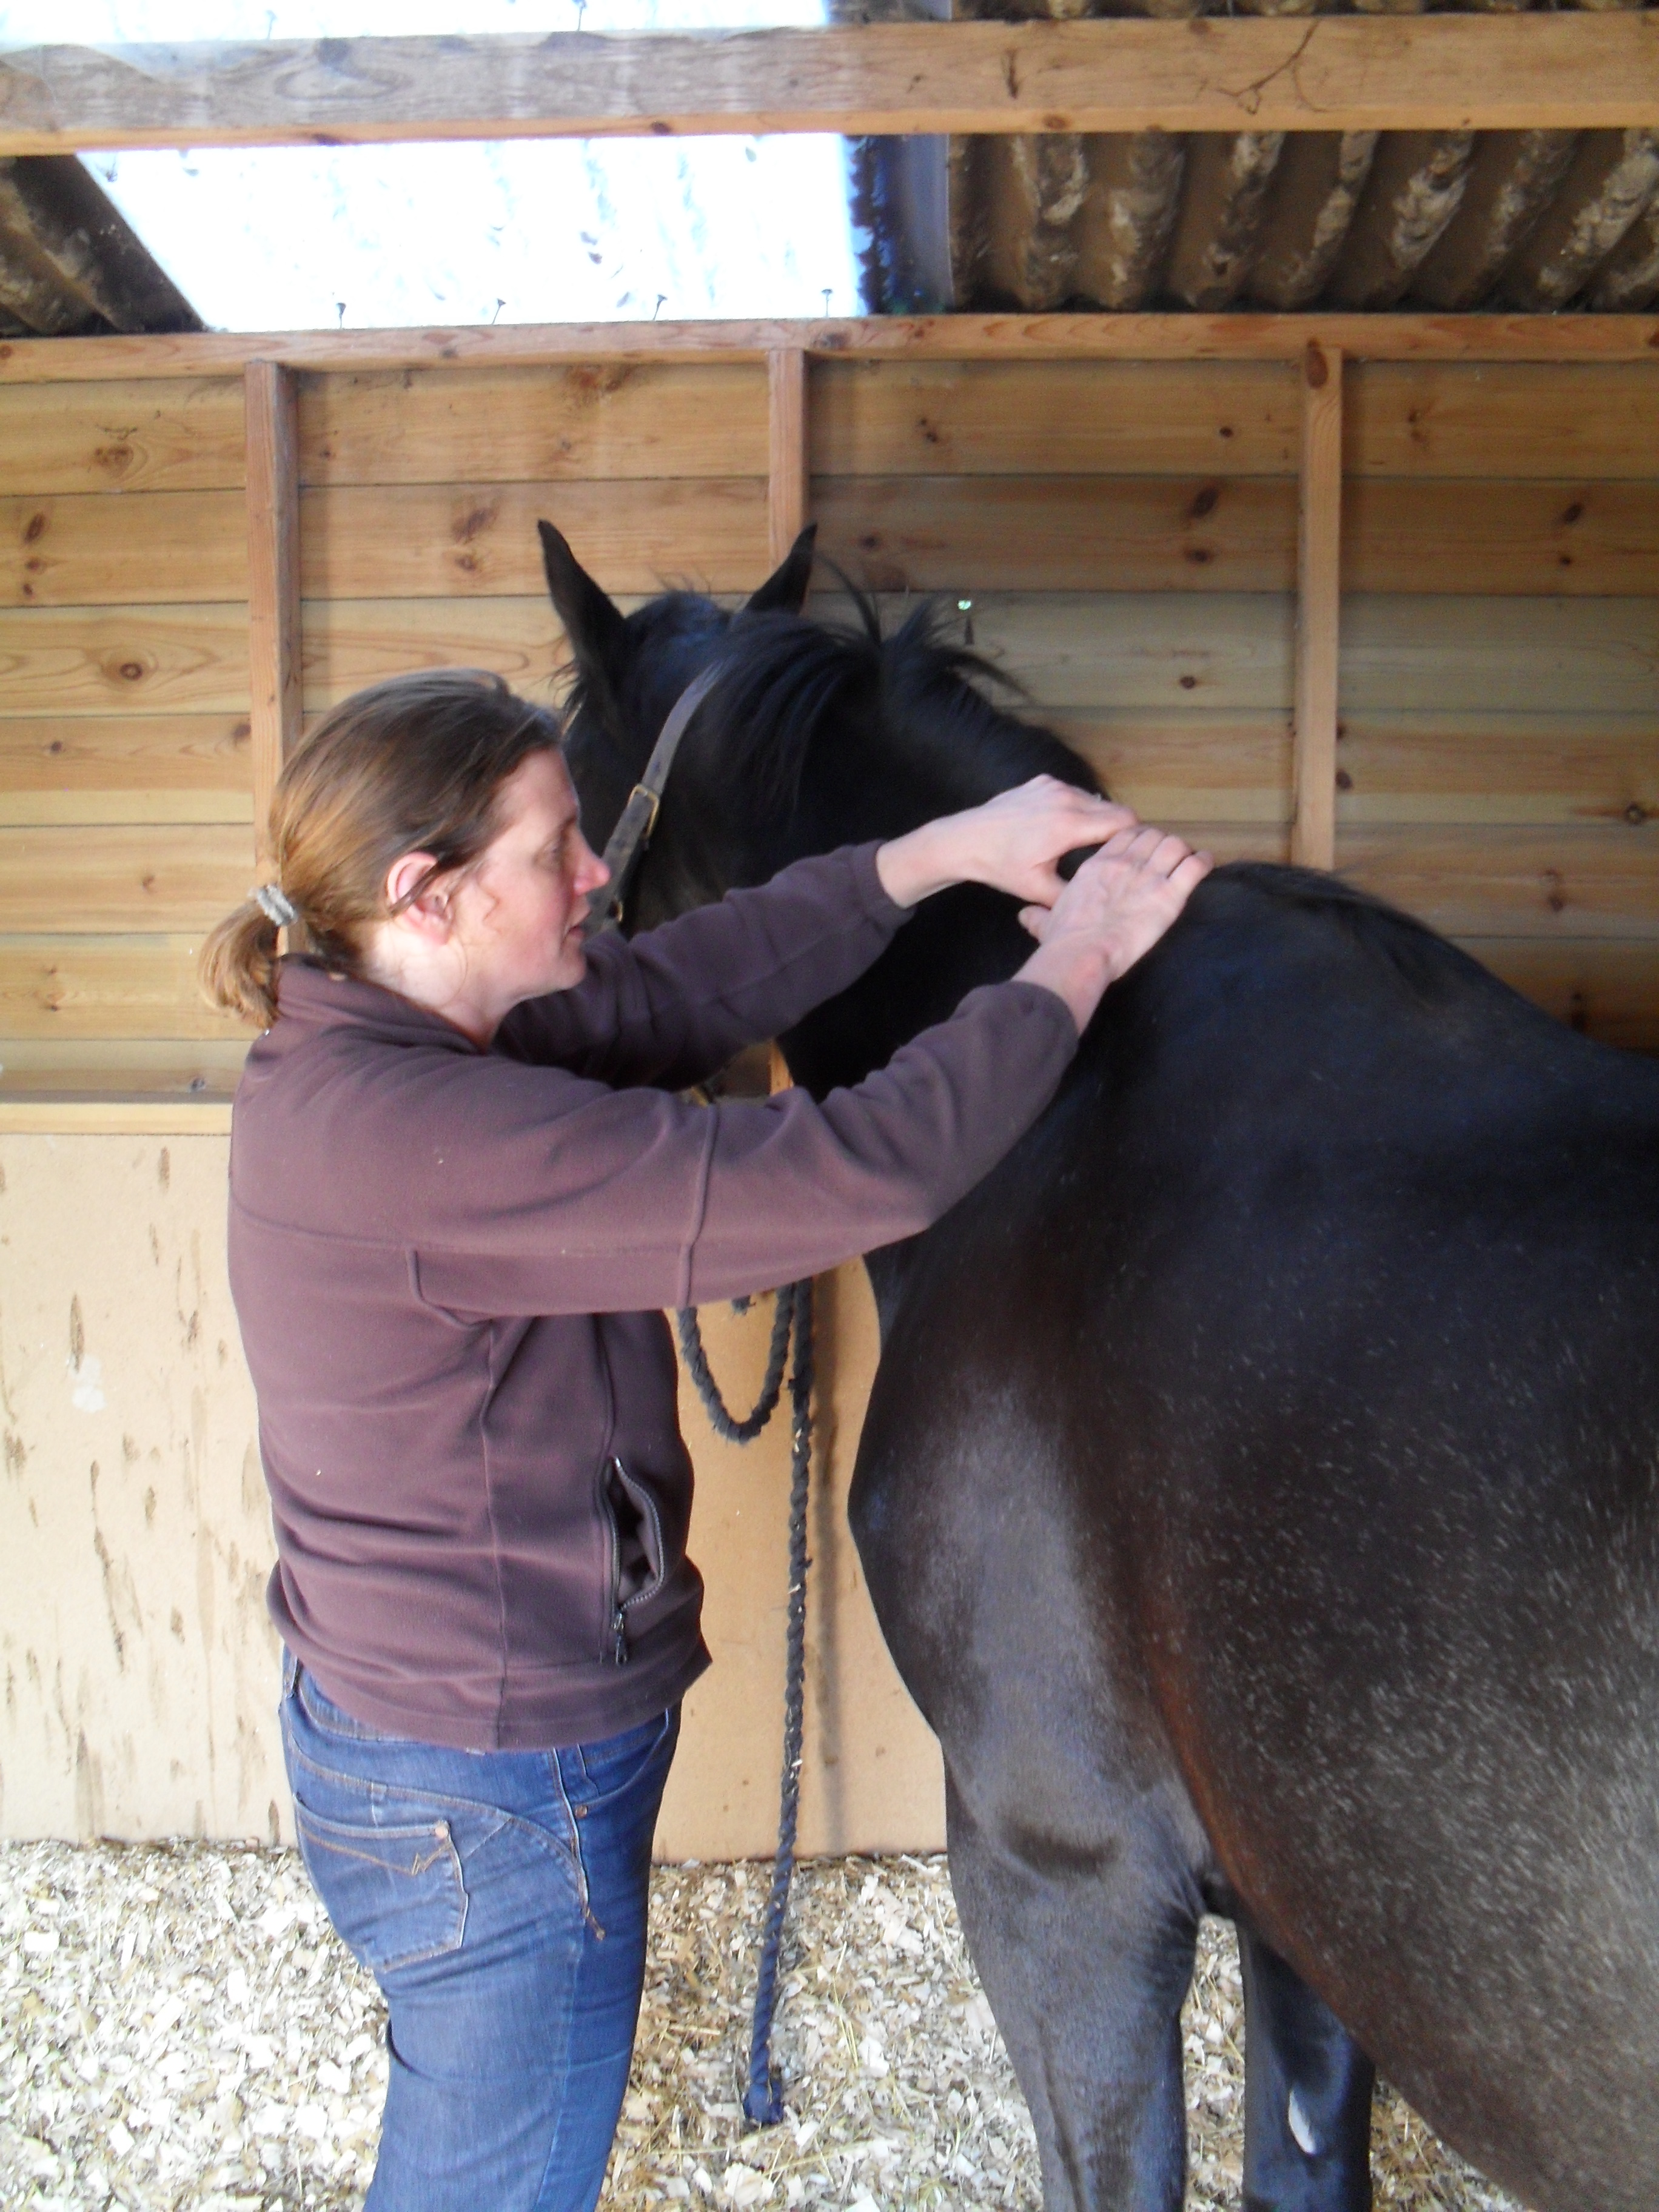 Equine physical therapy - Physical Therapy Is Not An Alternative For Veterinary Treatment And Veterinary Permission Is Required But It Can Be A Valuable Tool As Part Of The Horses